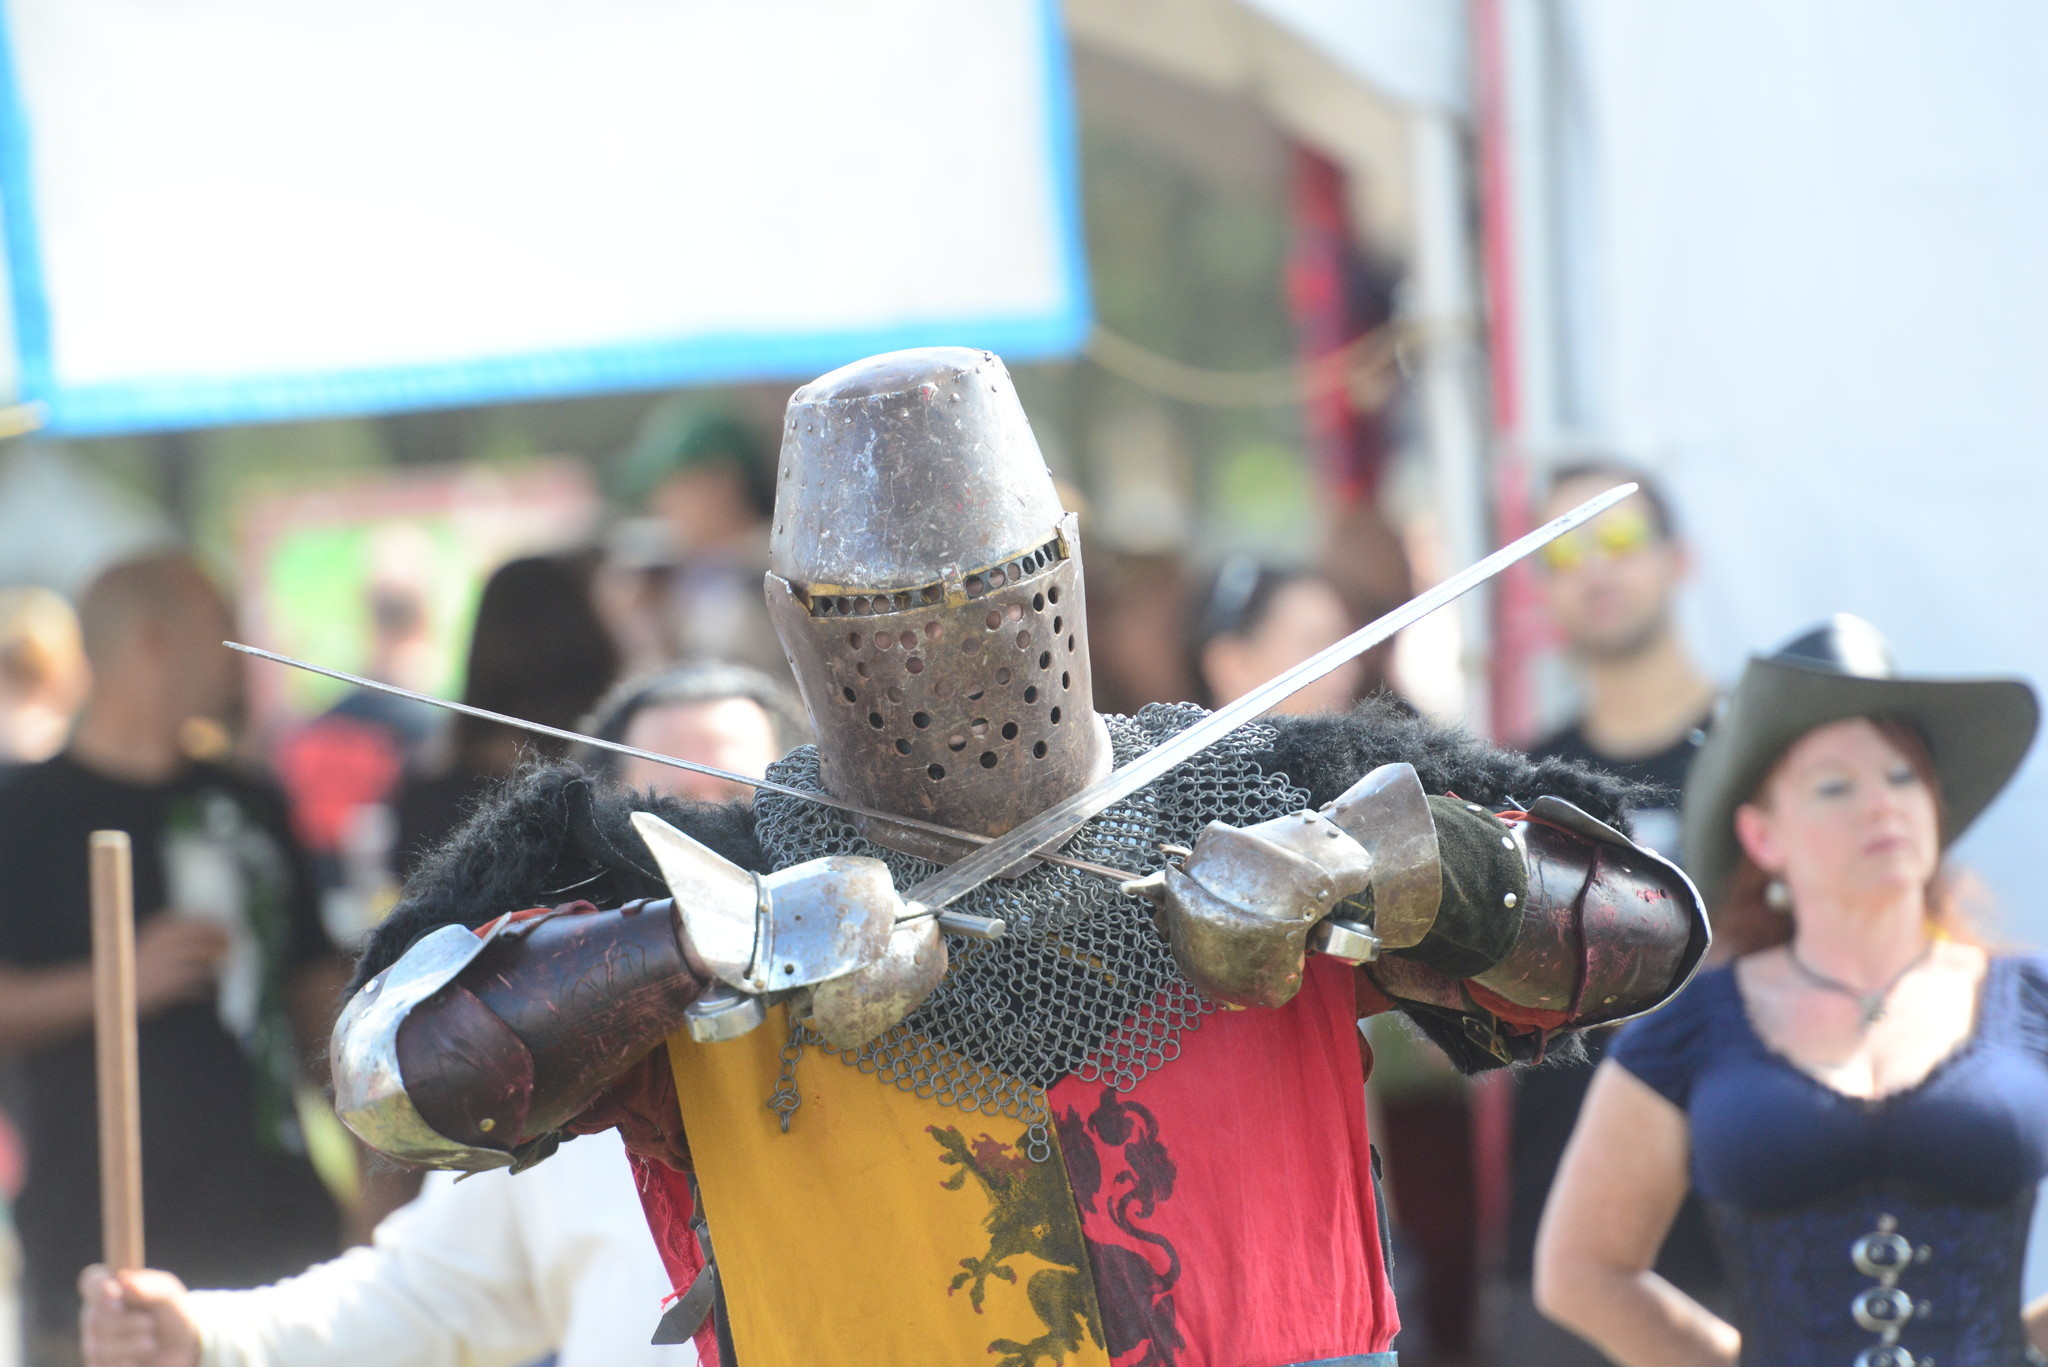 Renaissance Festival photos - Sir Drake